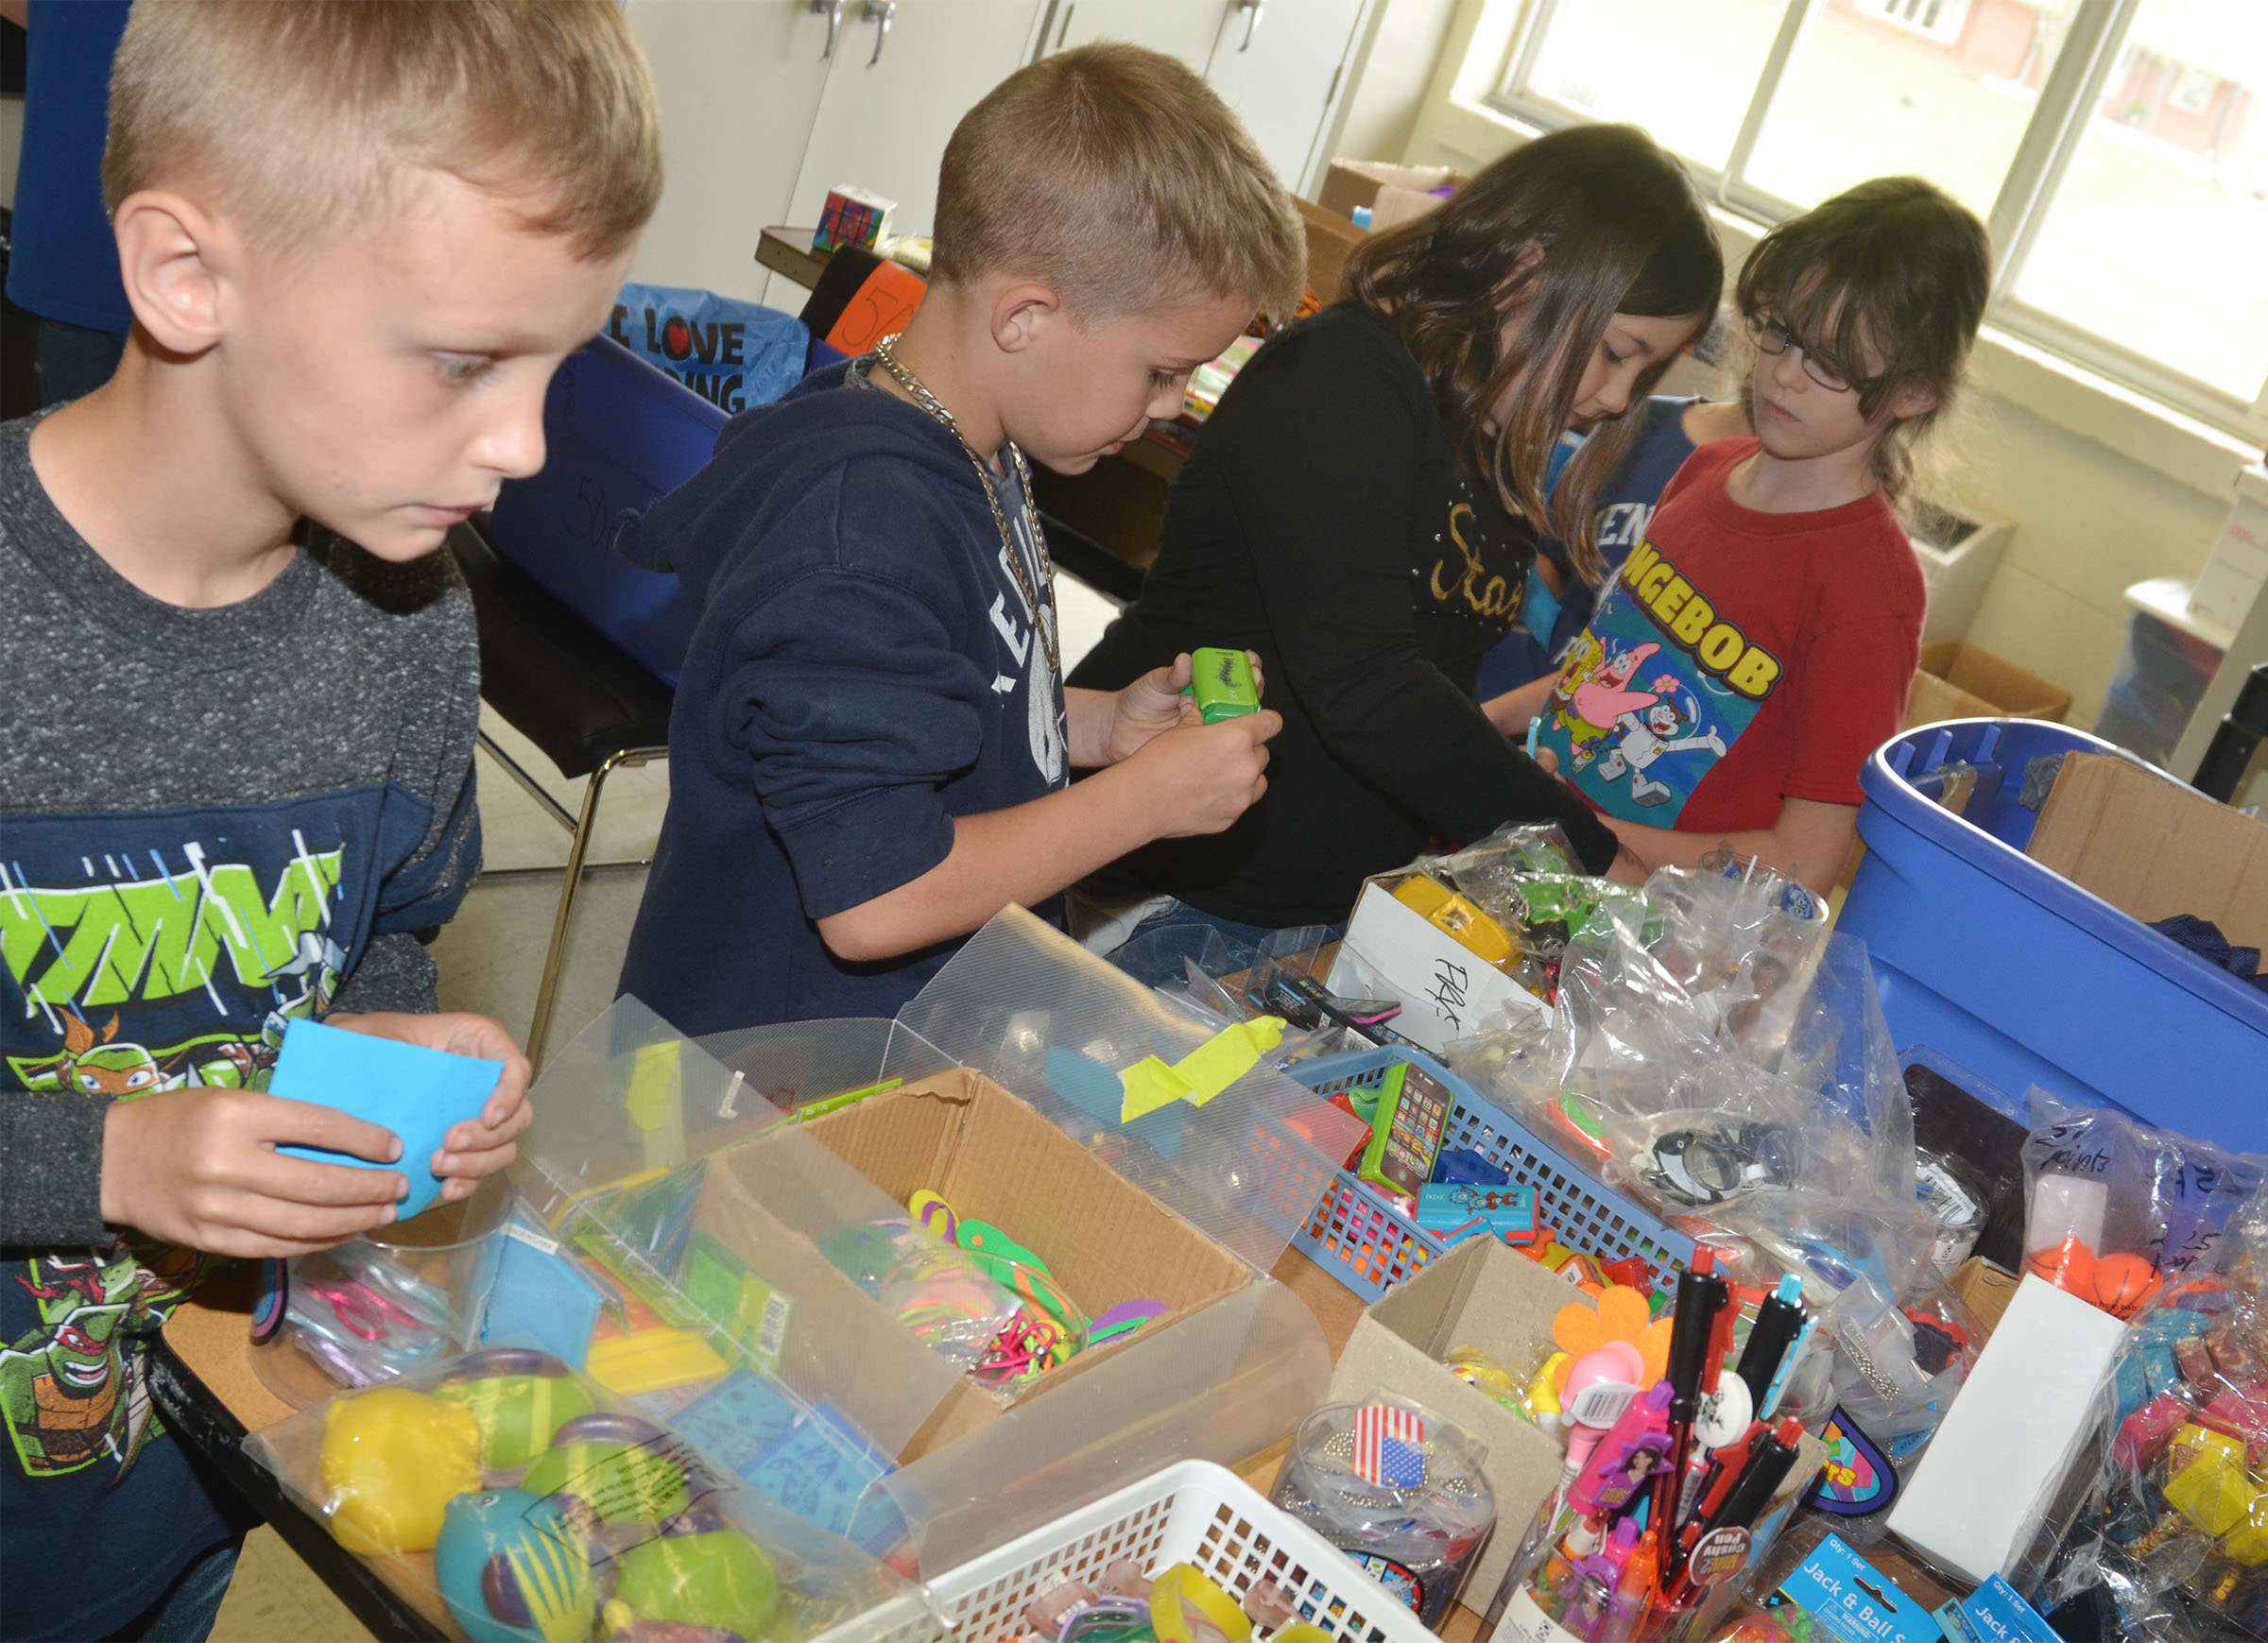 CES second-graders, from left, Aaron Ritchie, Kadin Coppage, Marissa Sumners and Lilly Wise shop with their AR points.